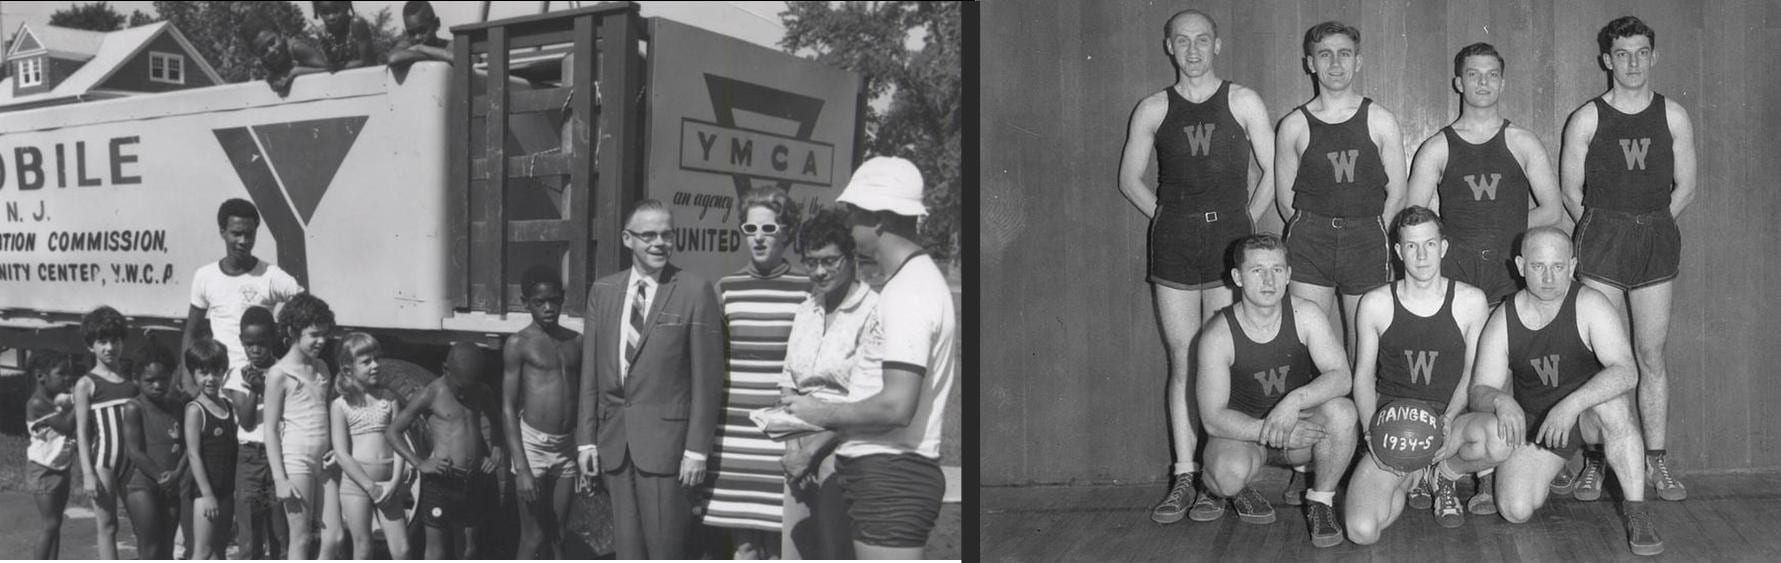 About Our Y's History - Westfield Area YMCA